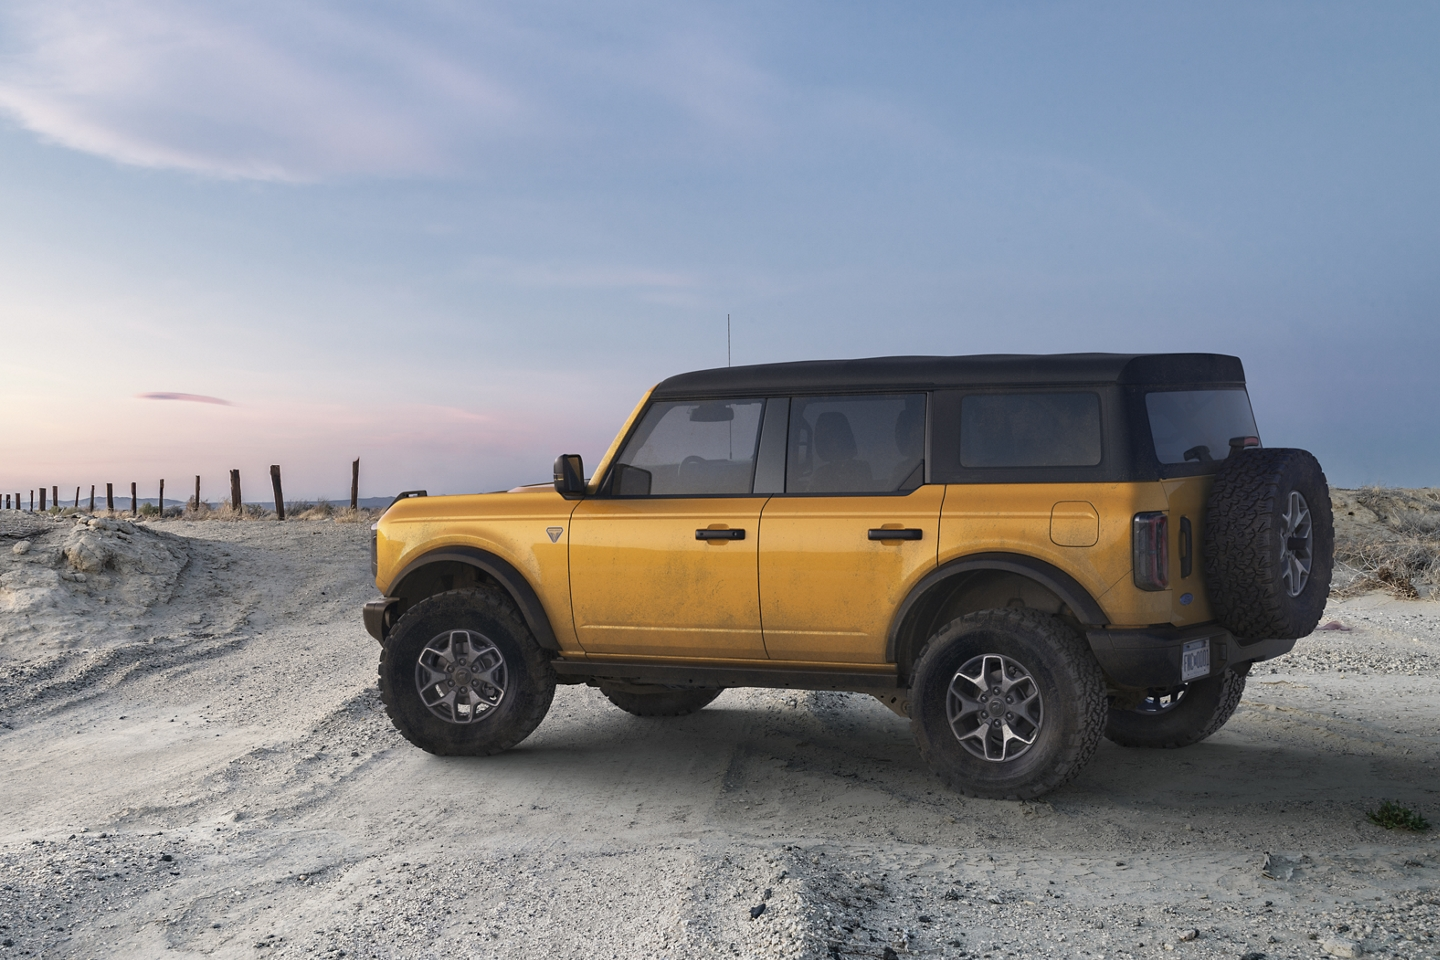 2021 Ford Bronco Badlands Series shown on a sandy beachfront